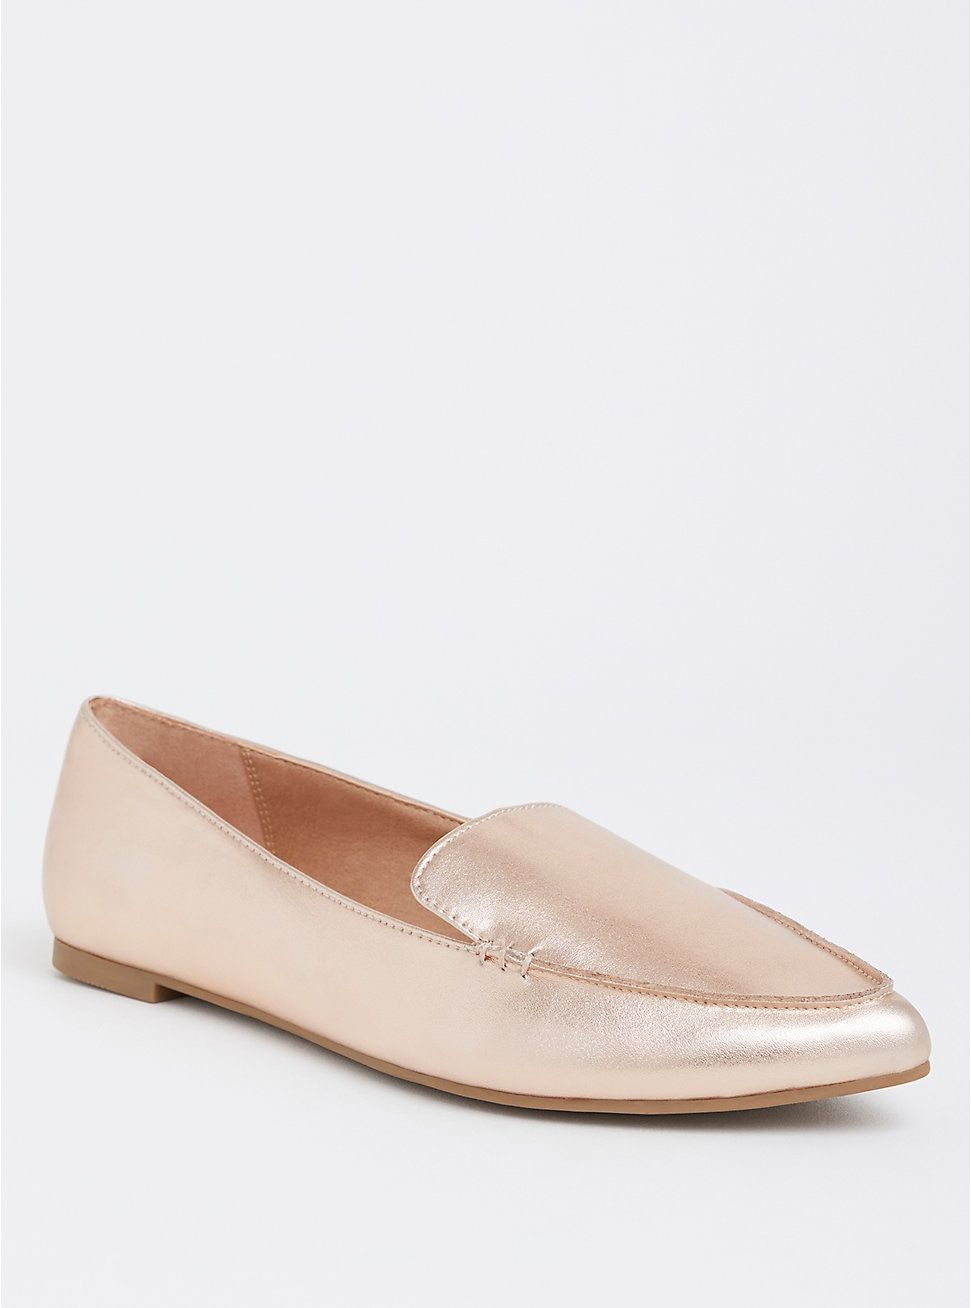 8b7c840980a Rose Gold Pointed Toe Loafer (Wide Width)